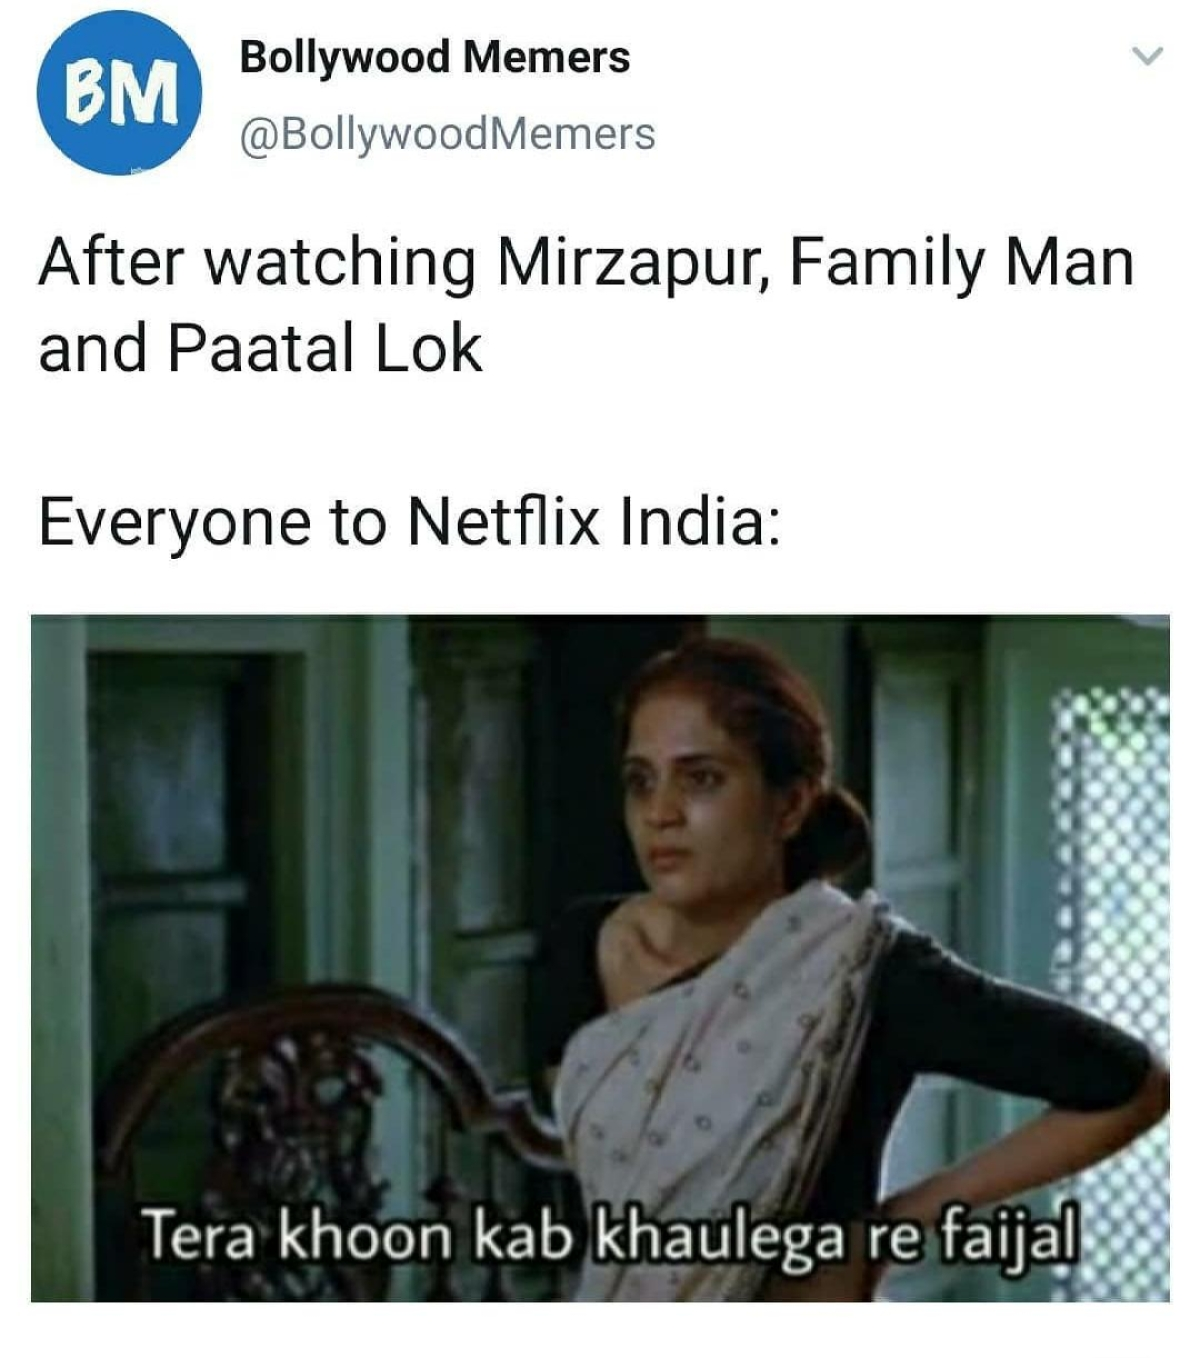 FPJ Fun Corner: Best WhatsApp memes and jokes to lighten your mood amid COVID-19 on May 18, 2020